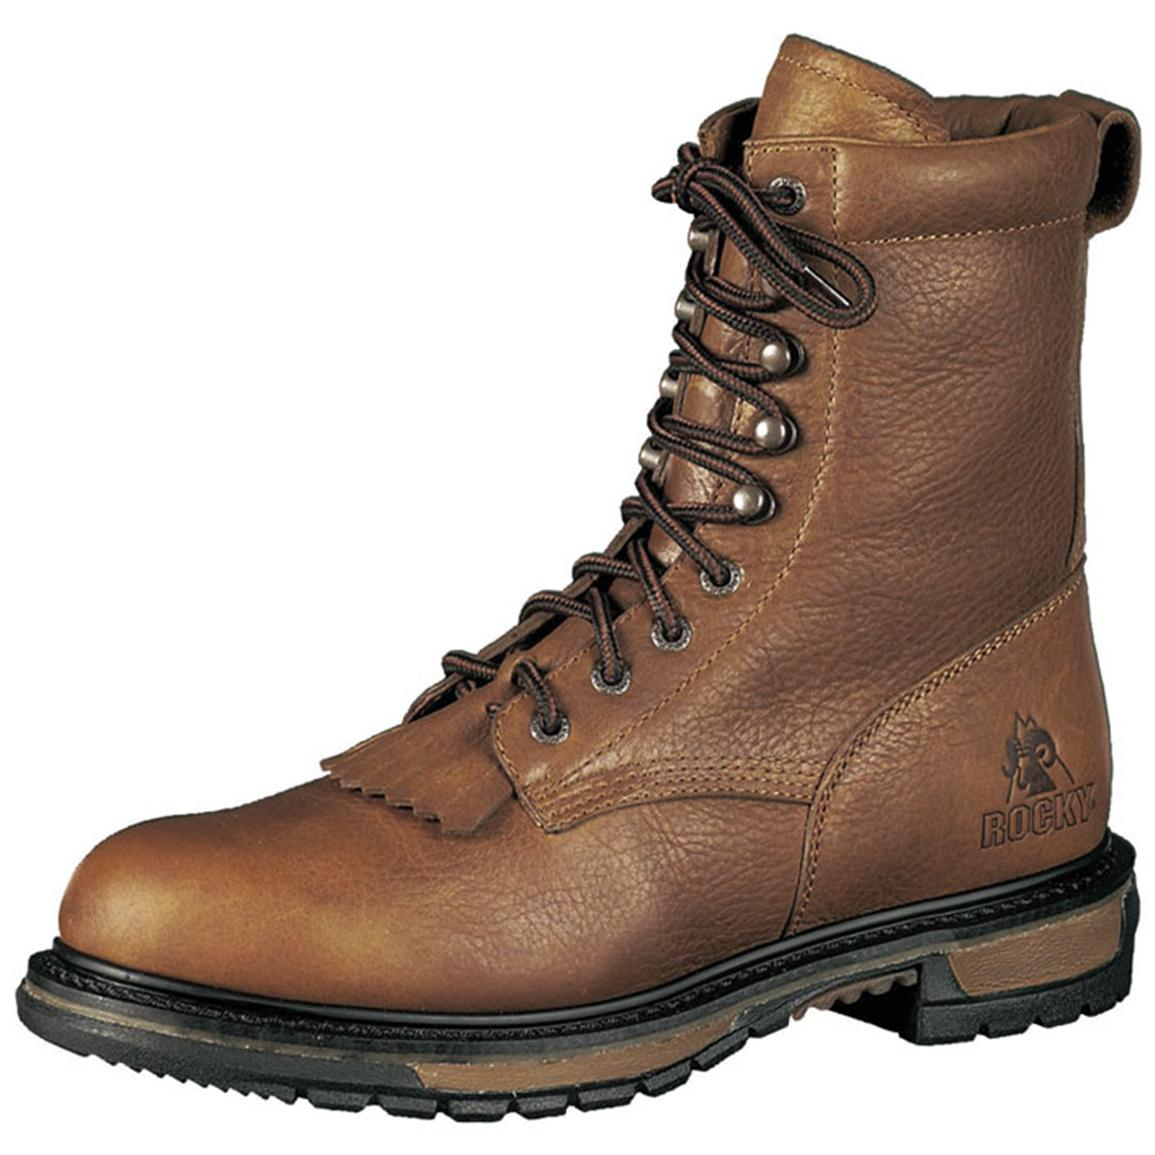 Free shipping BOTH ways on Boots, Men, from our vast selection of styles. Fast delivery, and 24/7/ real-person service with a smile. Click or call